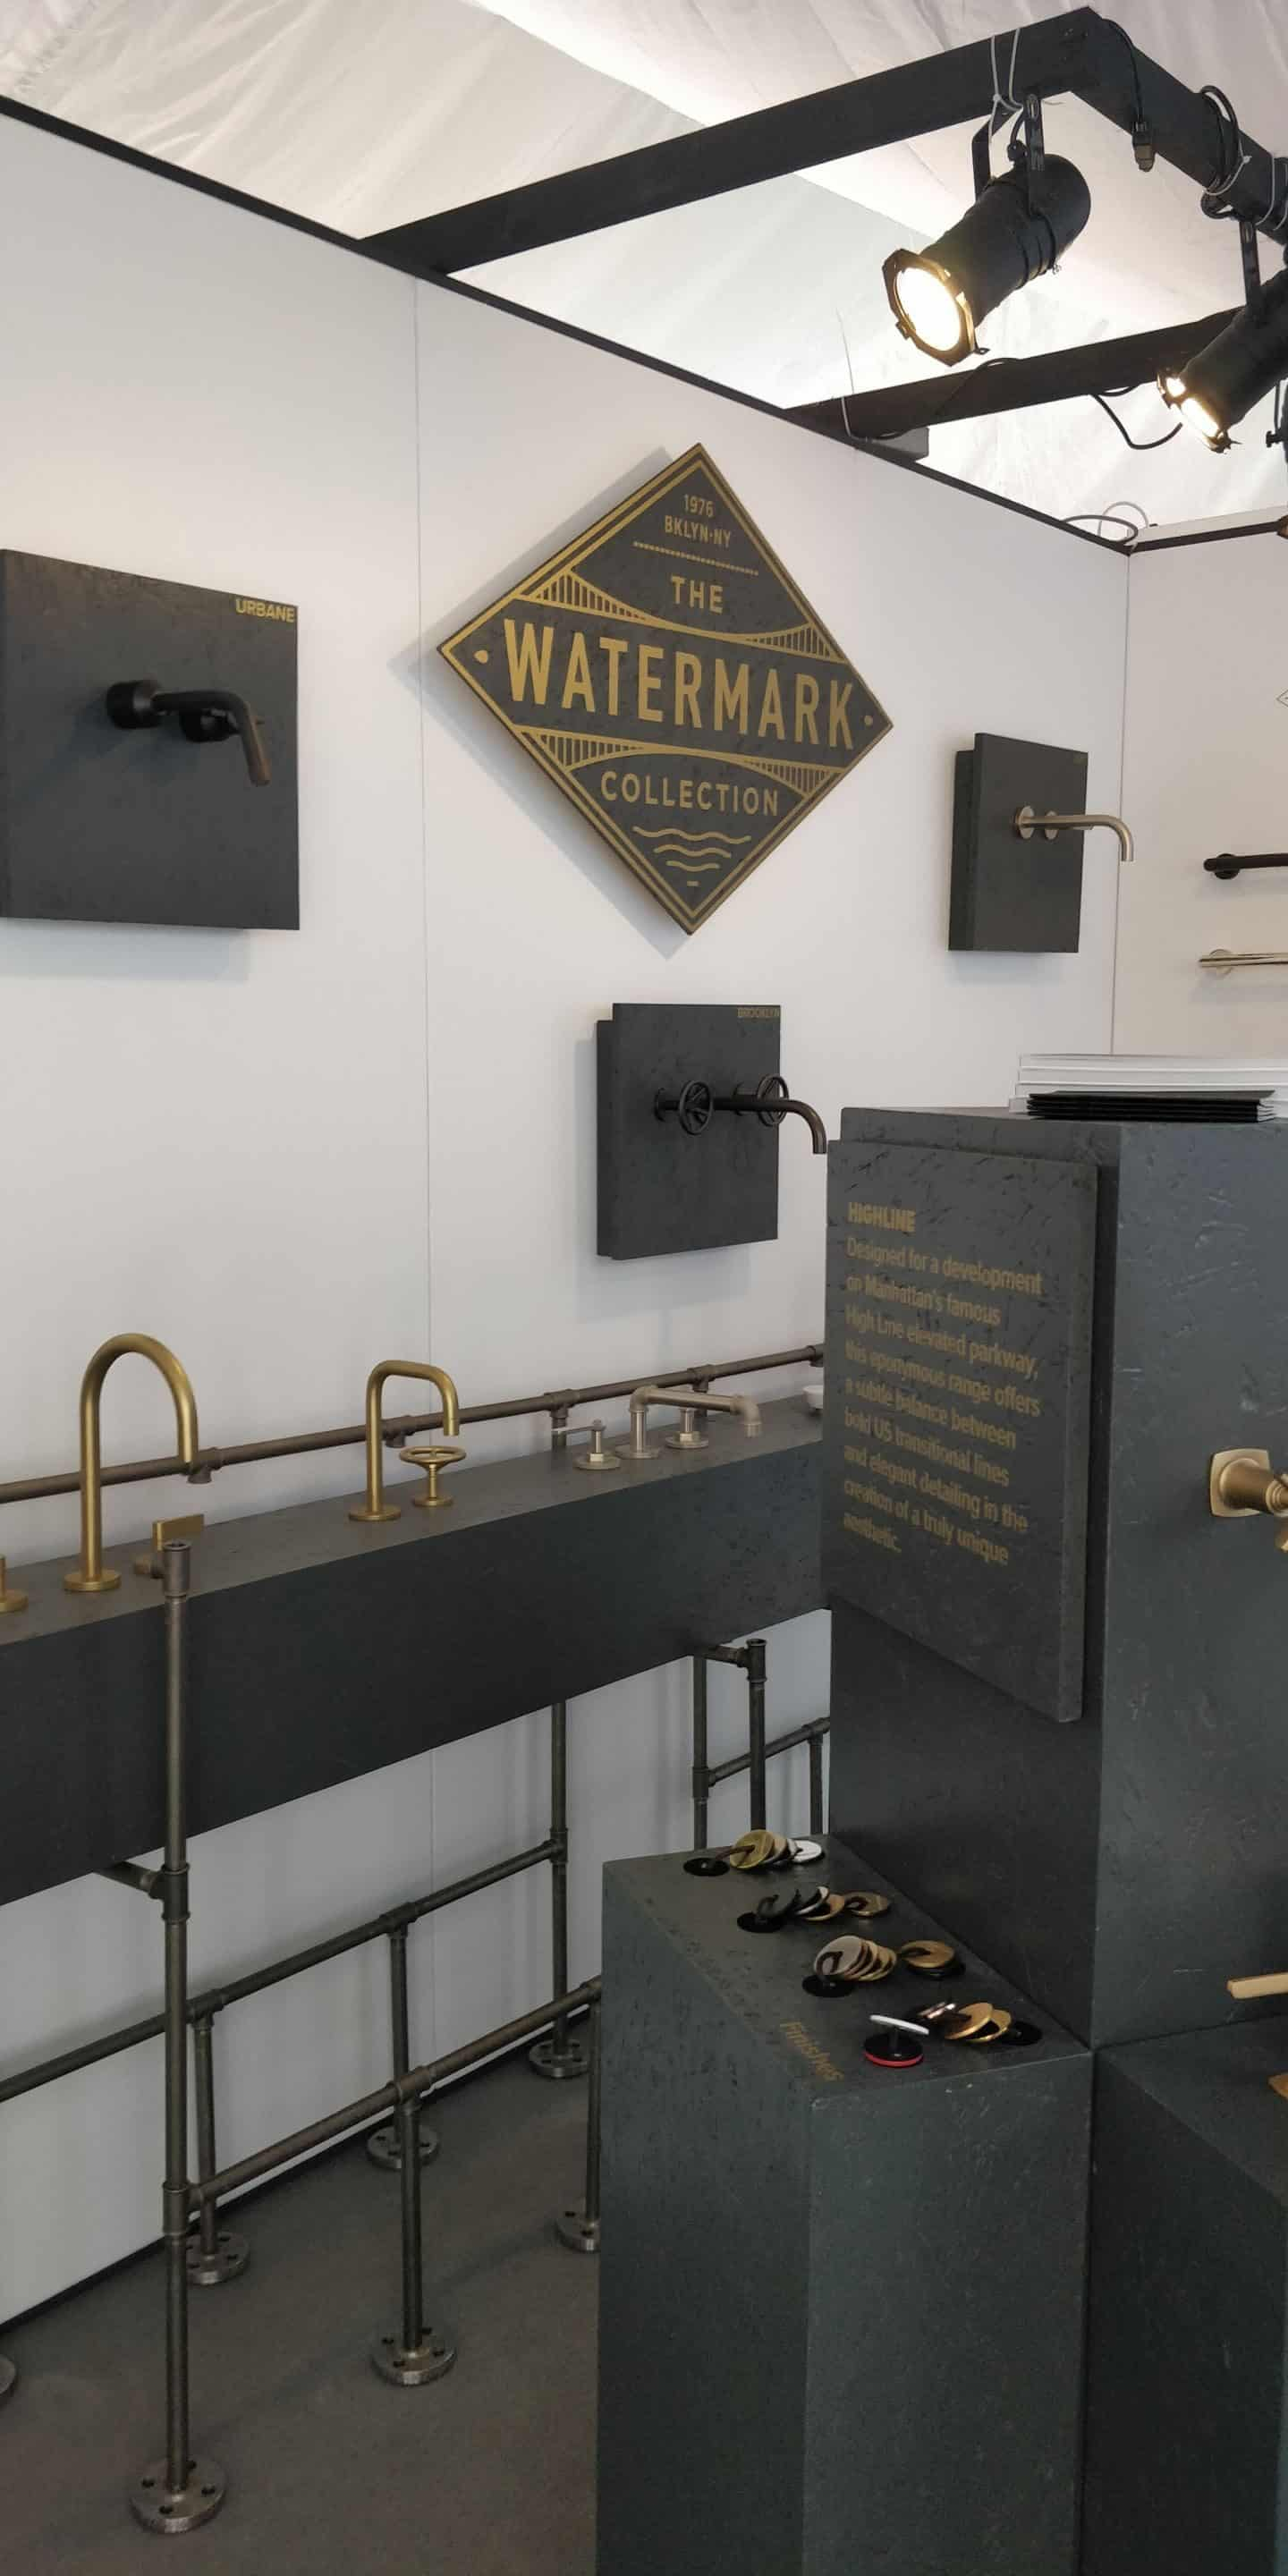 Watermark Collection at Clerkenwell Design Week 2019